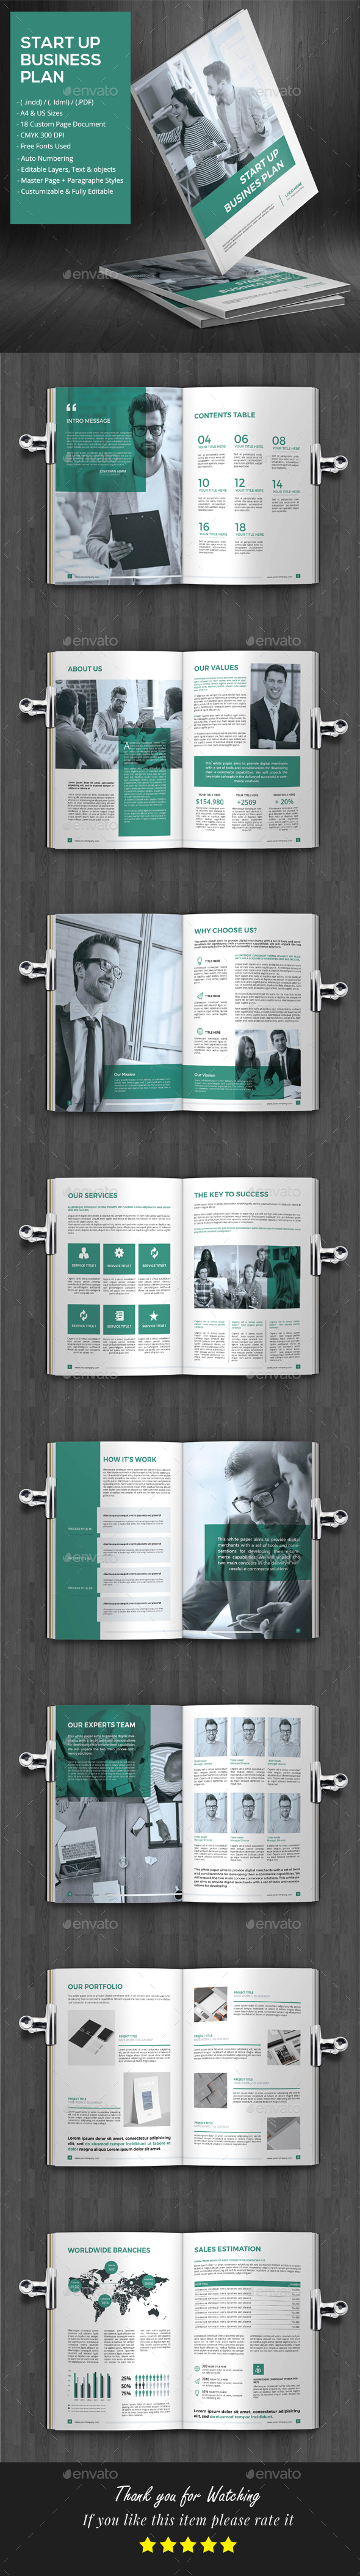 Stylish Business Plan - Brochures Print Templates